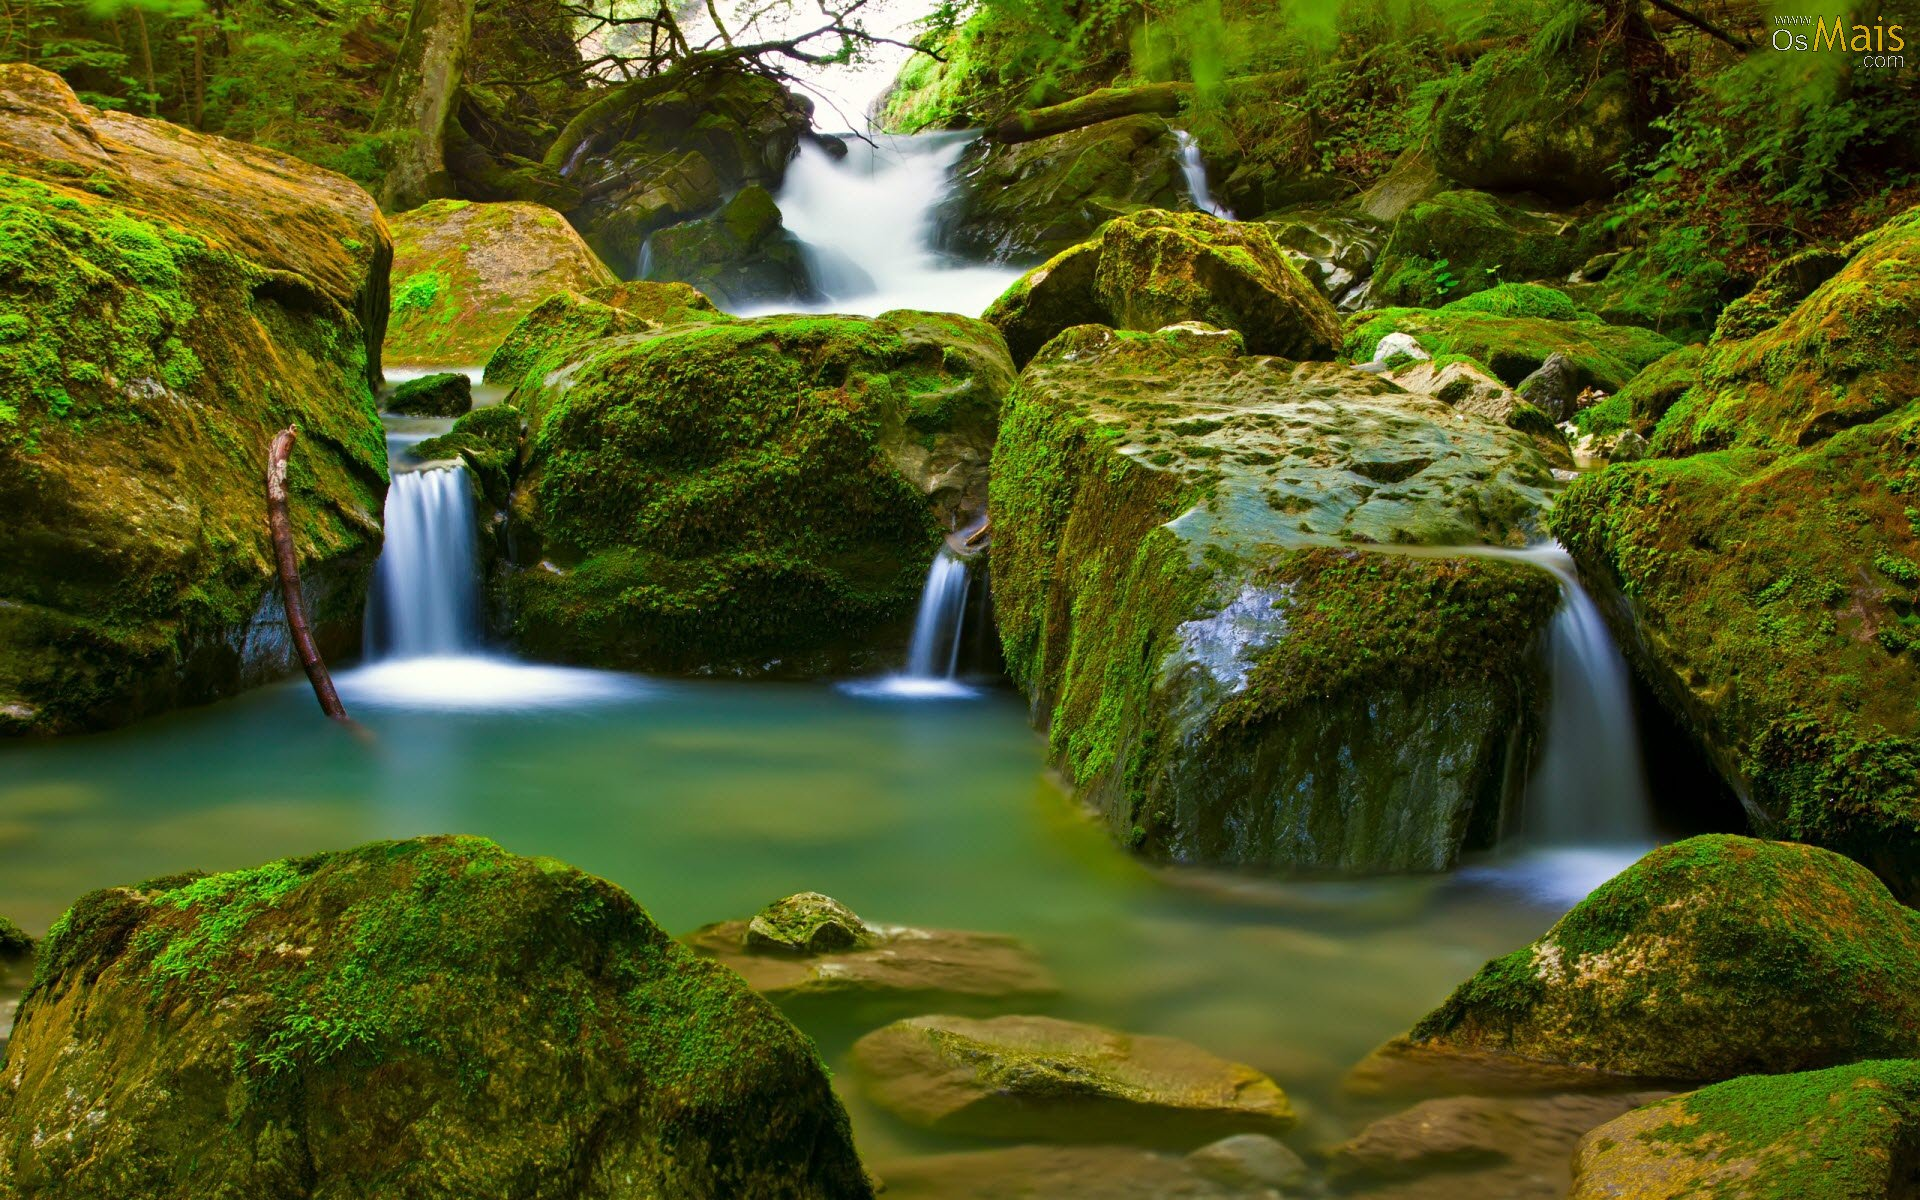 http://www.osmais.com/wallpapers/201207/cachoeira-wallpaper.jpg